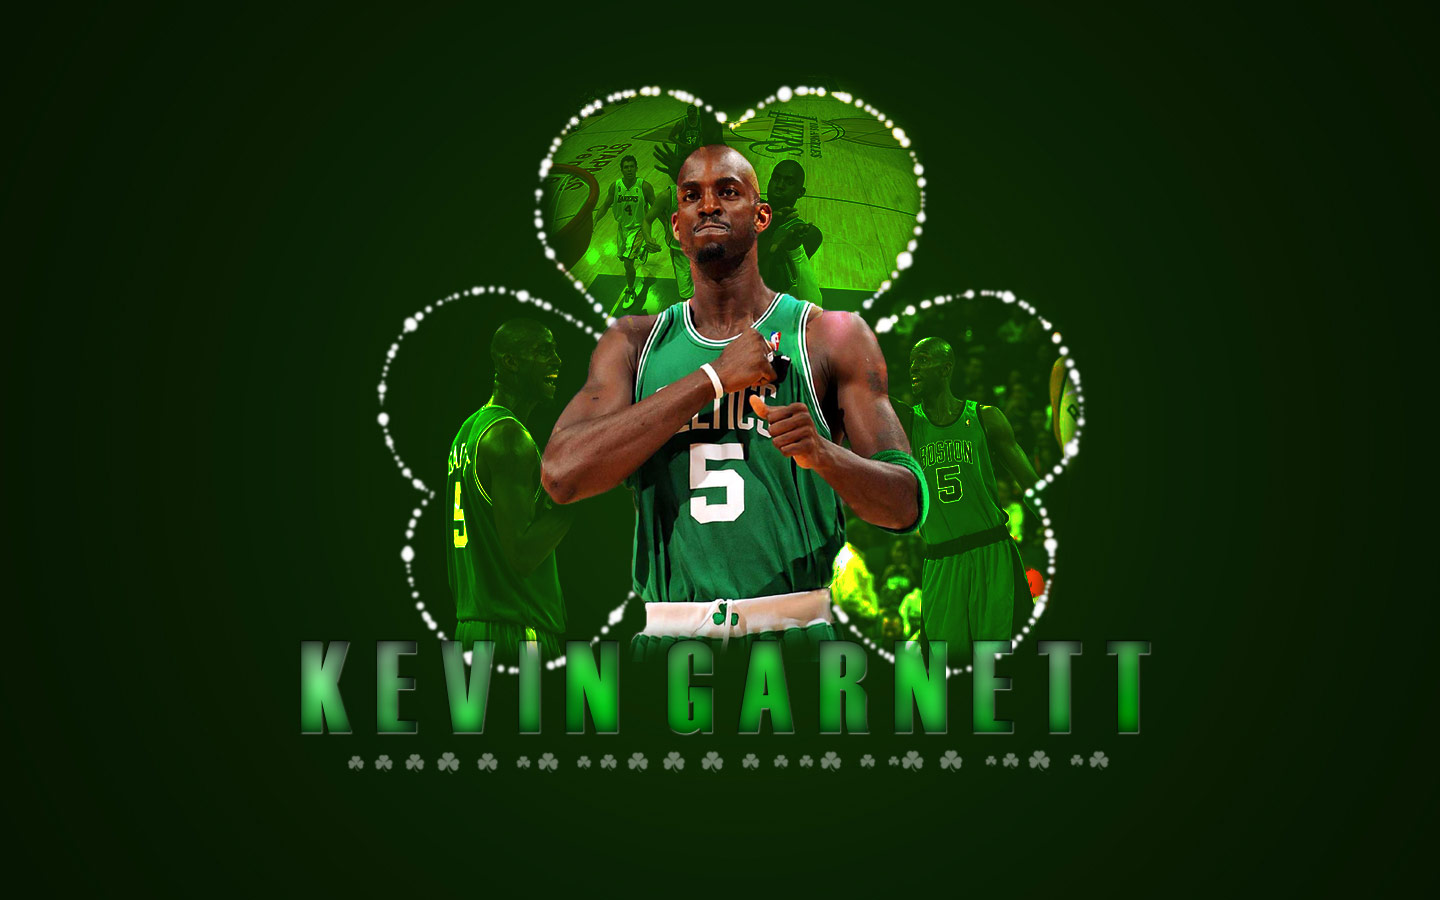 Kevin Garnett Wallpapers NBA Wallpapers Basket Ball 1440x900